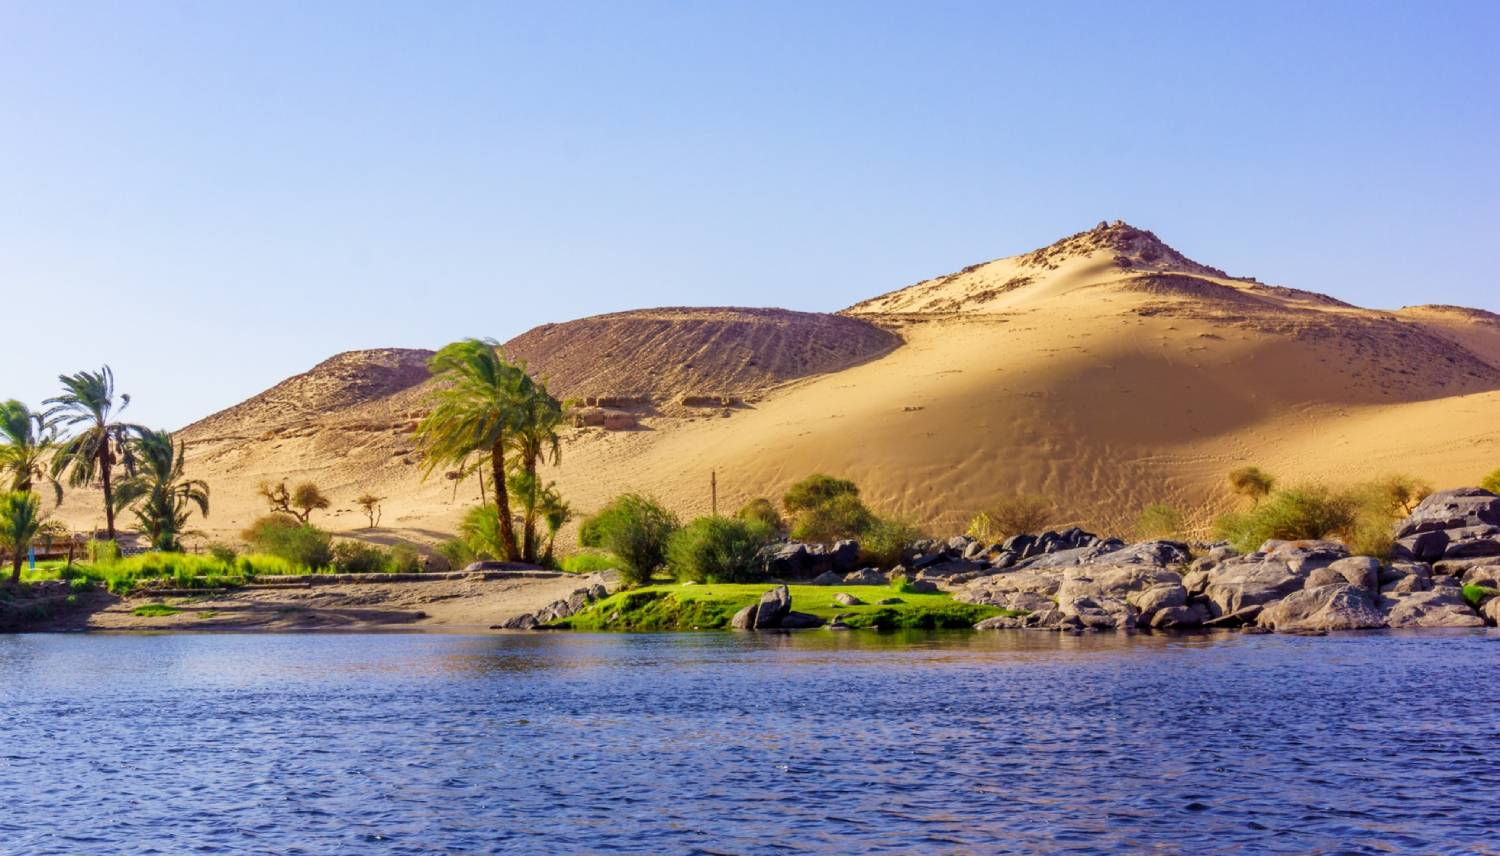 Nile River - Things To Do In Luxor